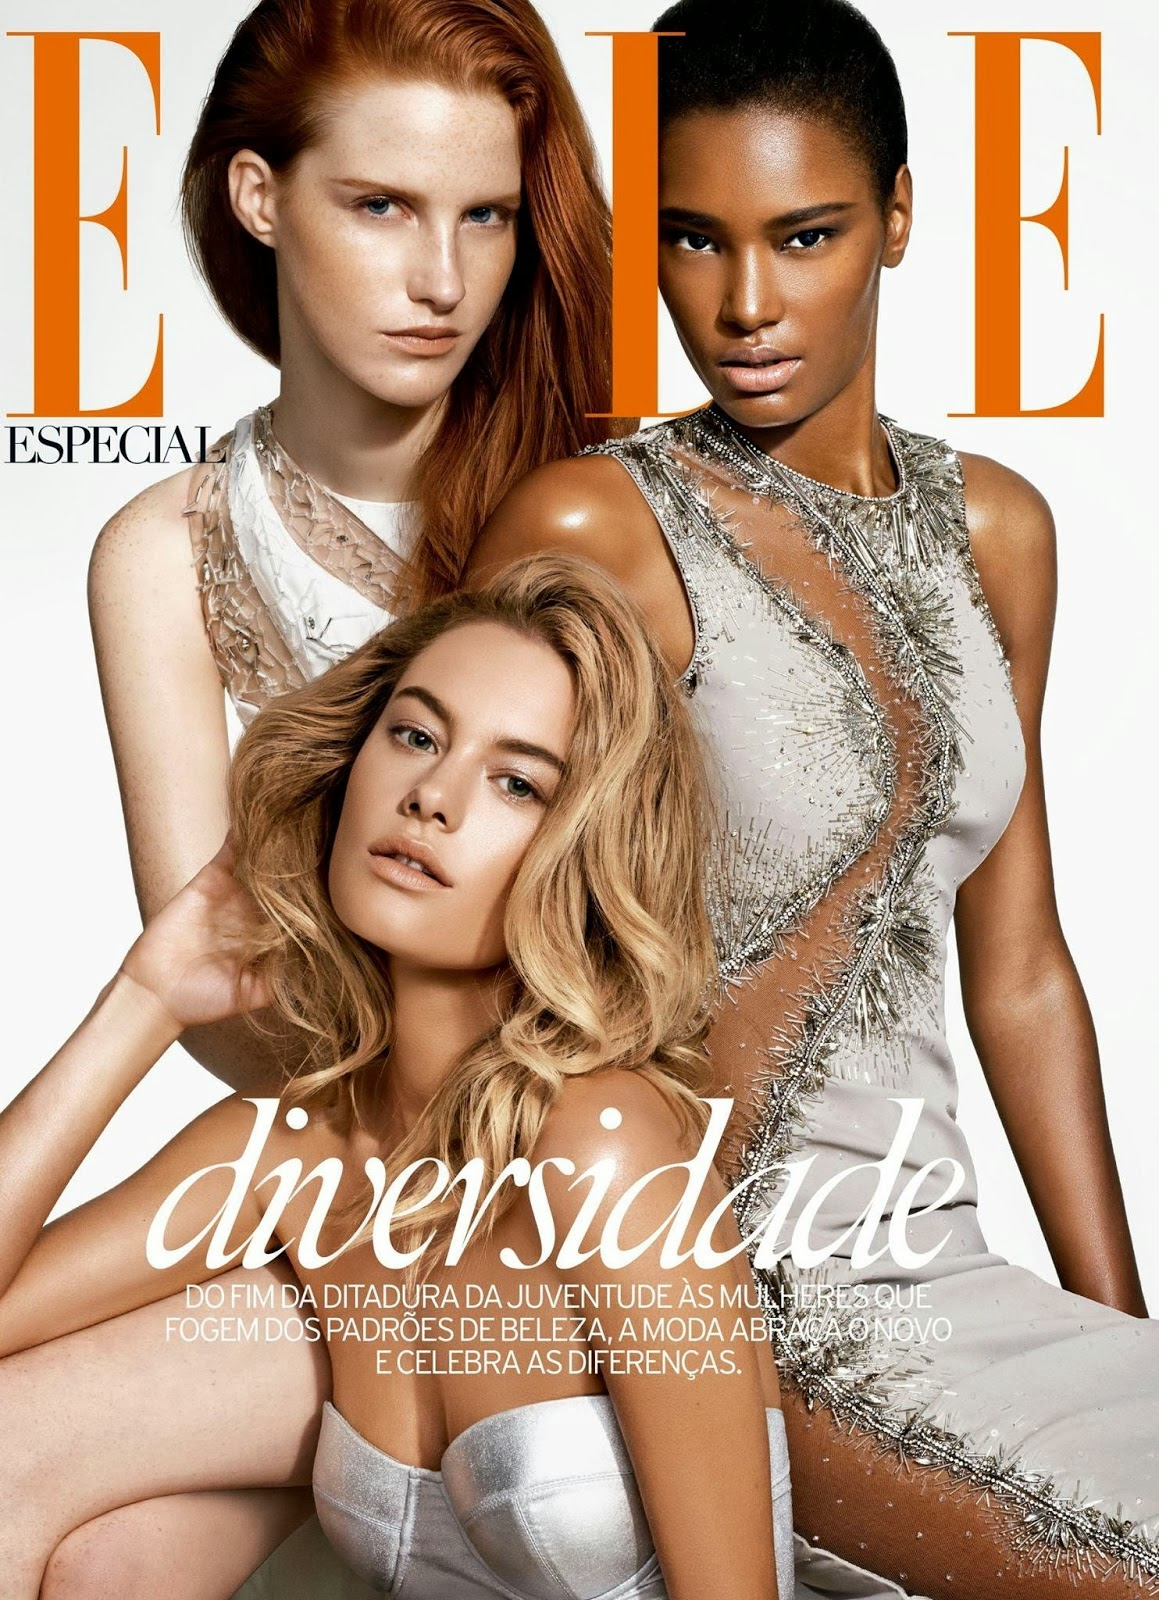 Magdalena Jasek, Camille Rowe And Ysaunny Brito HQ Pictures Elle Brasil Magazine Photoshoot February 2014 By Nicole Heiniger